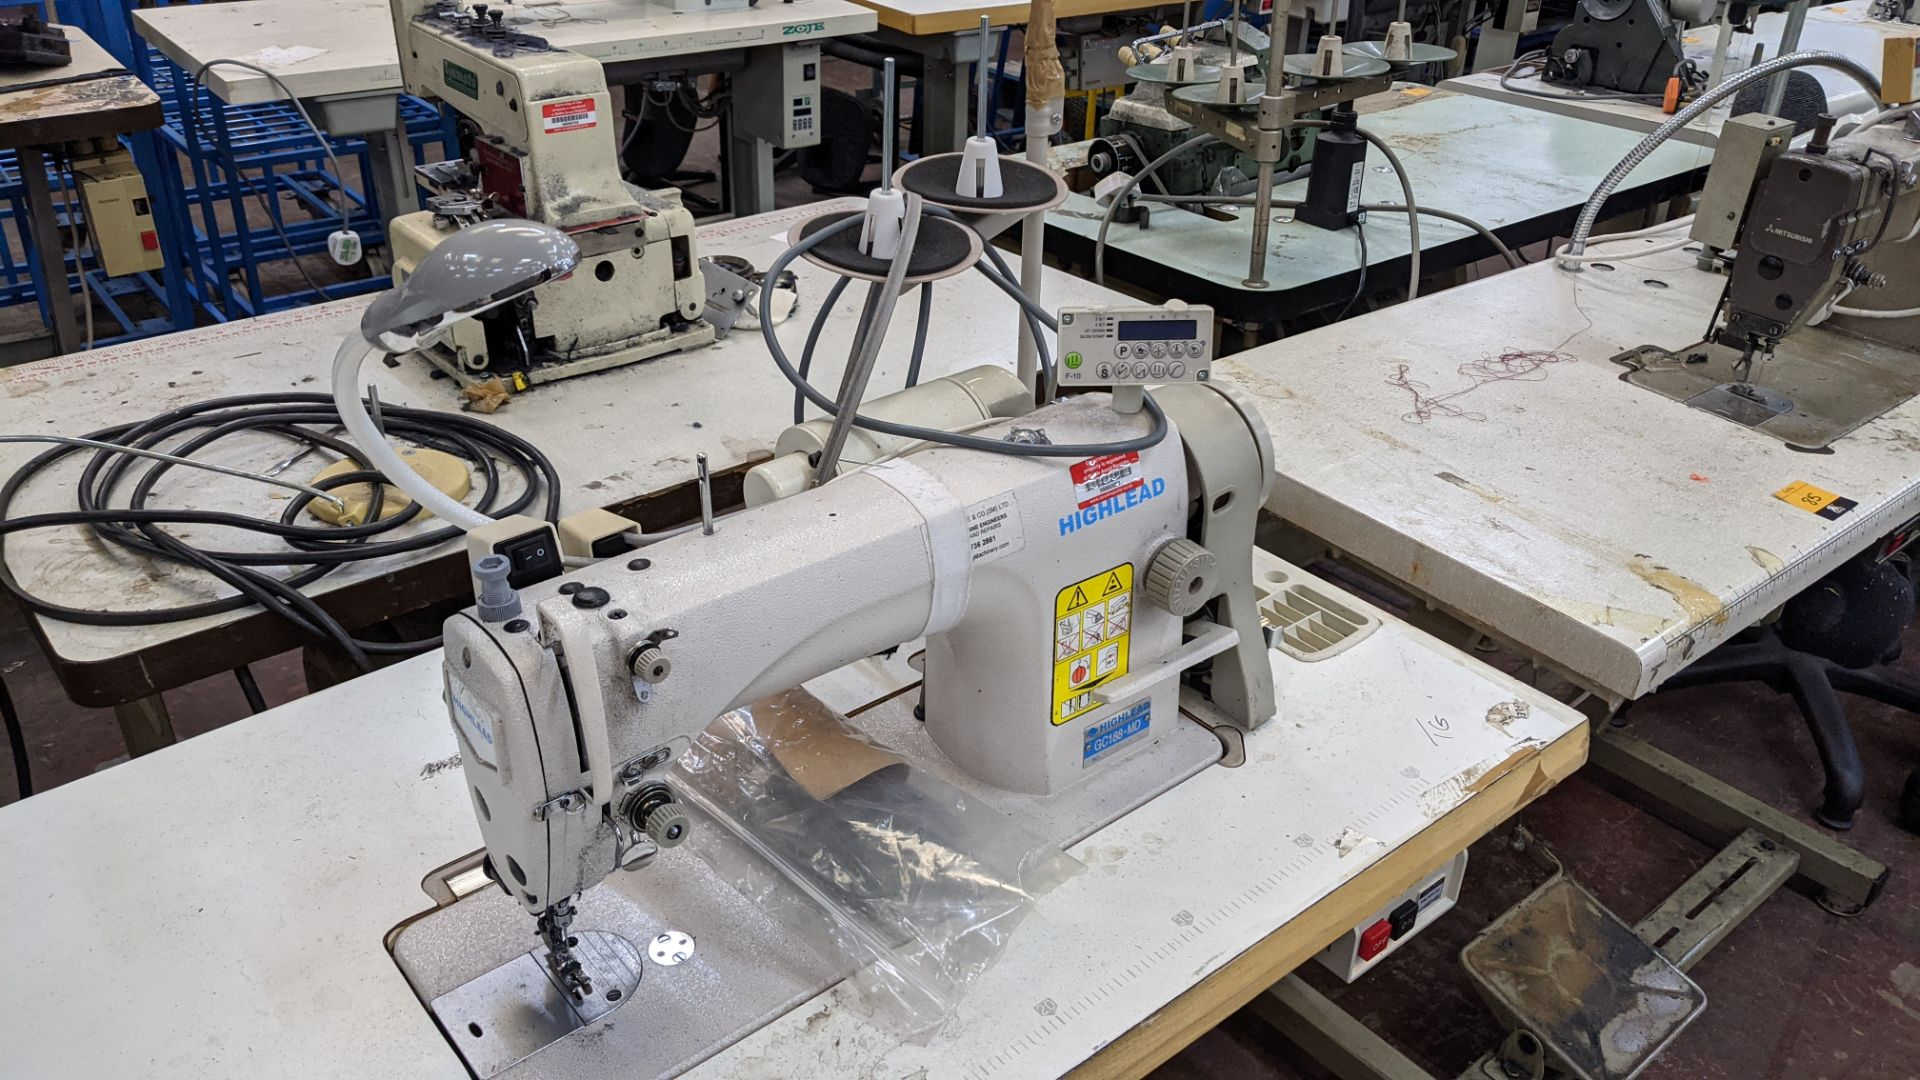 Highlead model GC188-MD sewing machine with model F-10 digital controller - Image 6 of 15